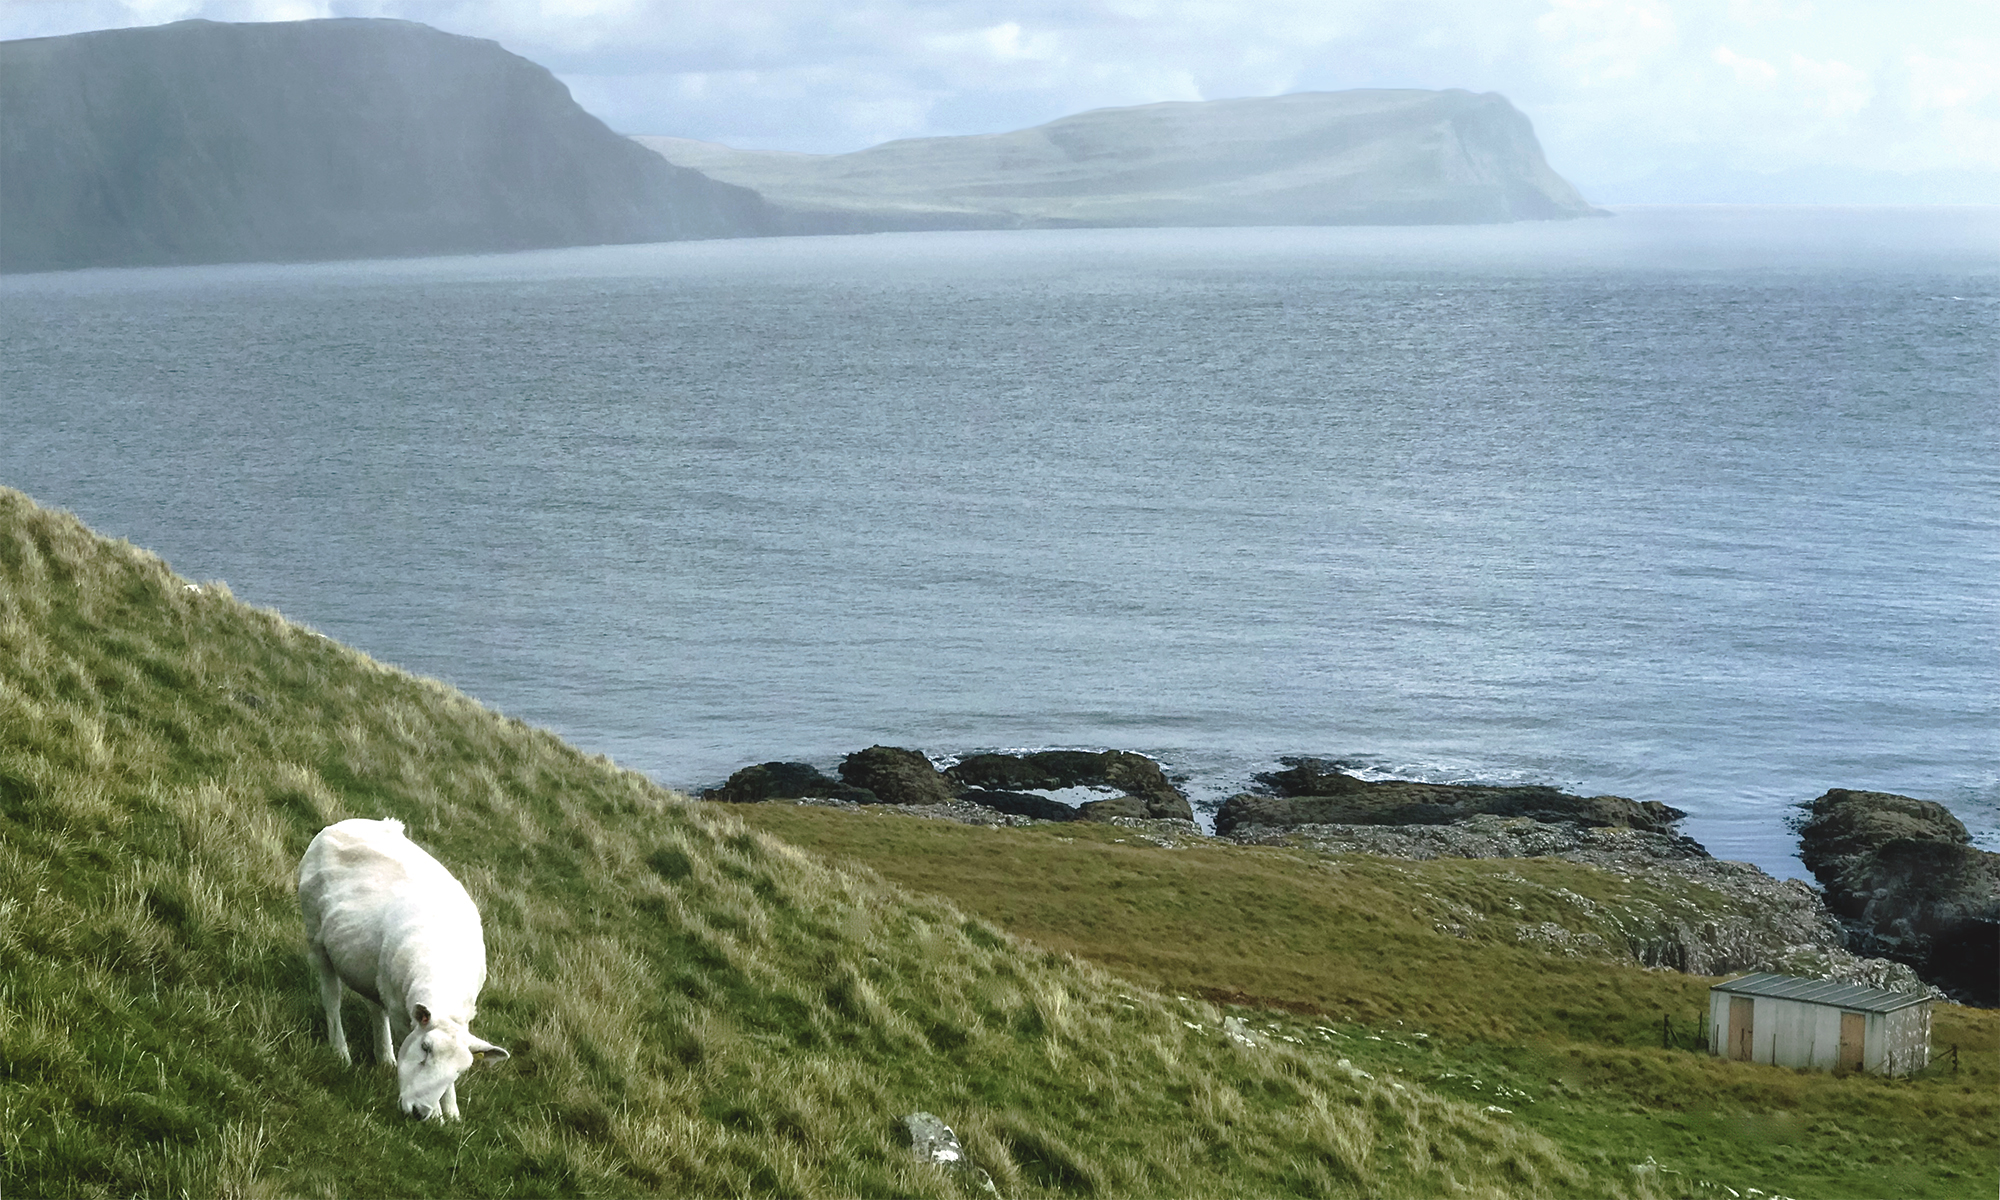 Photo of a sheep grazing on a hill next to the sea and cliffs